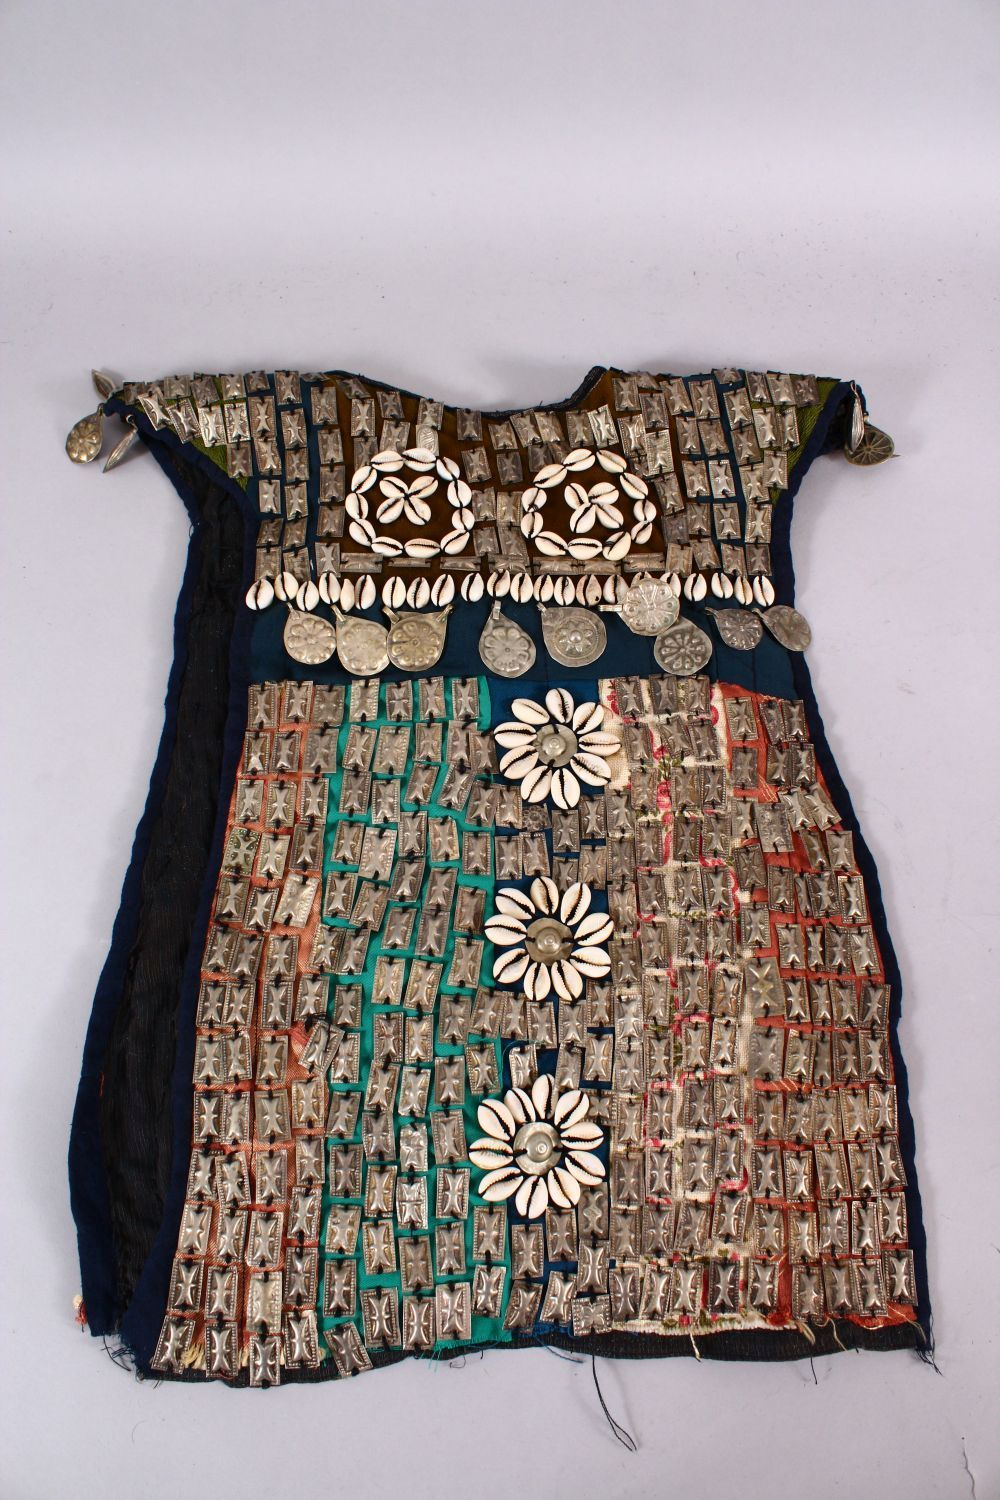 A 19TH CENTURY TURKISH SILVER ONLAID CHILDS DRESS, with silver roundel and shell applications. - Image 5 of 7